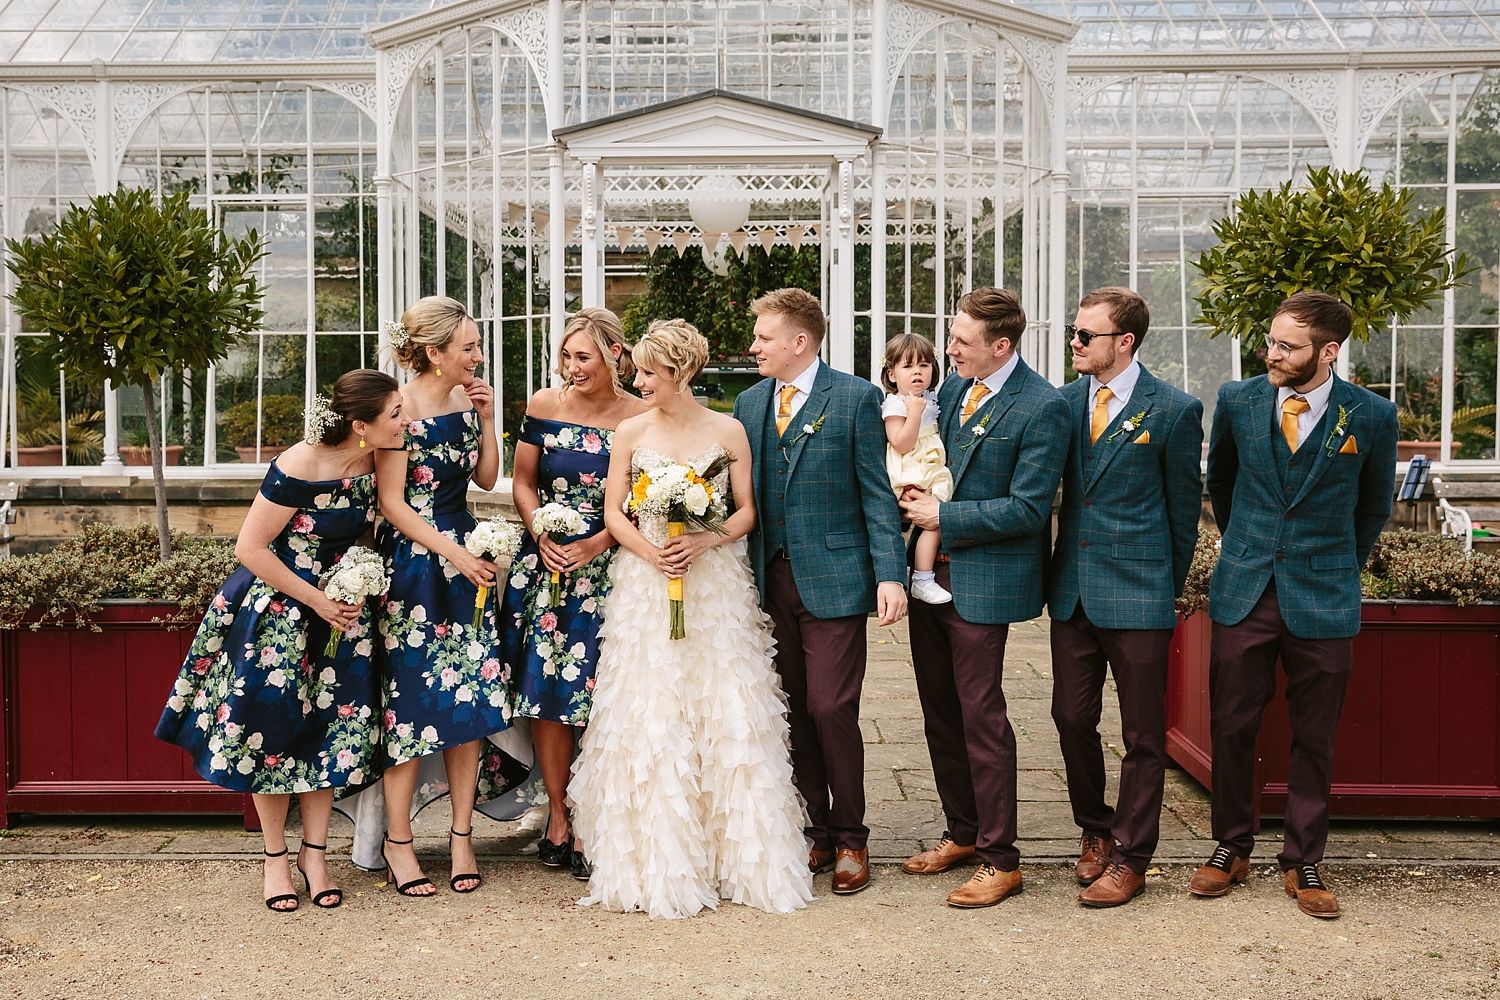 Natlie-Matthew-yorkshire-natural-relaxed-fun-documentary-reportage-candid-wedding-photography-photographer-Derby-Nottingham-Derbyshire-Nottinghamshire-Leicestershire-Lincolnshire-East-Midlands-55.jpg